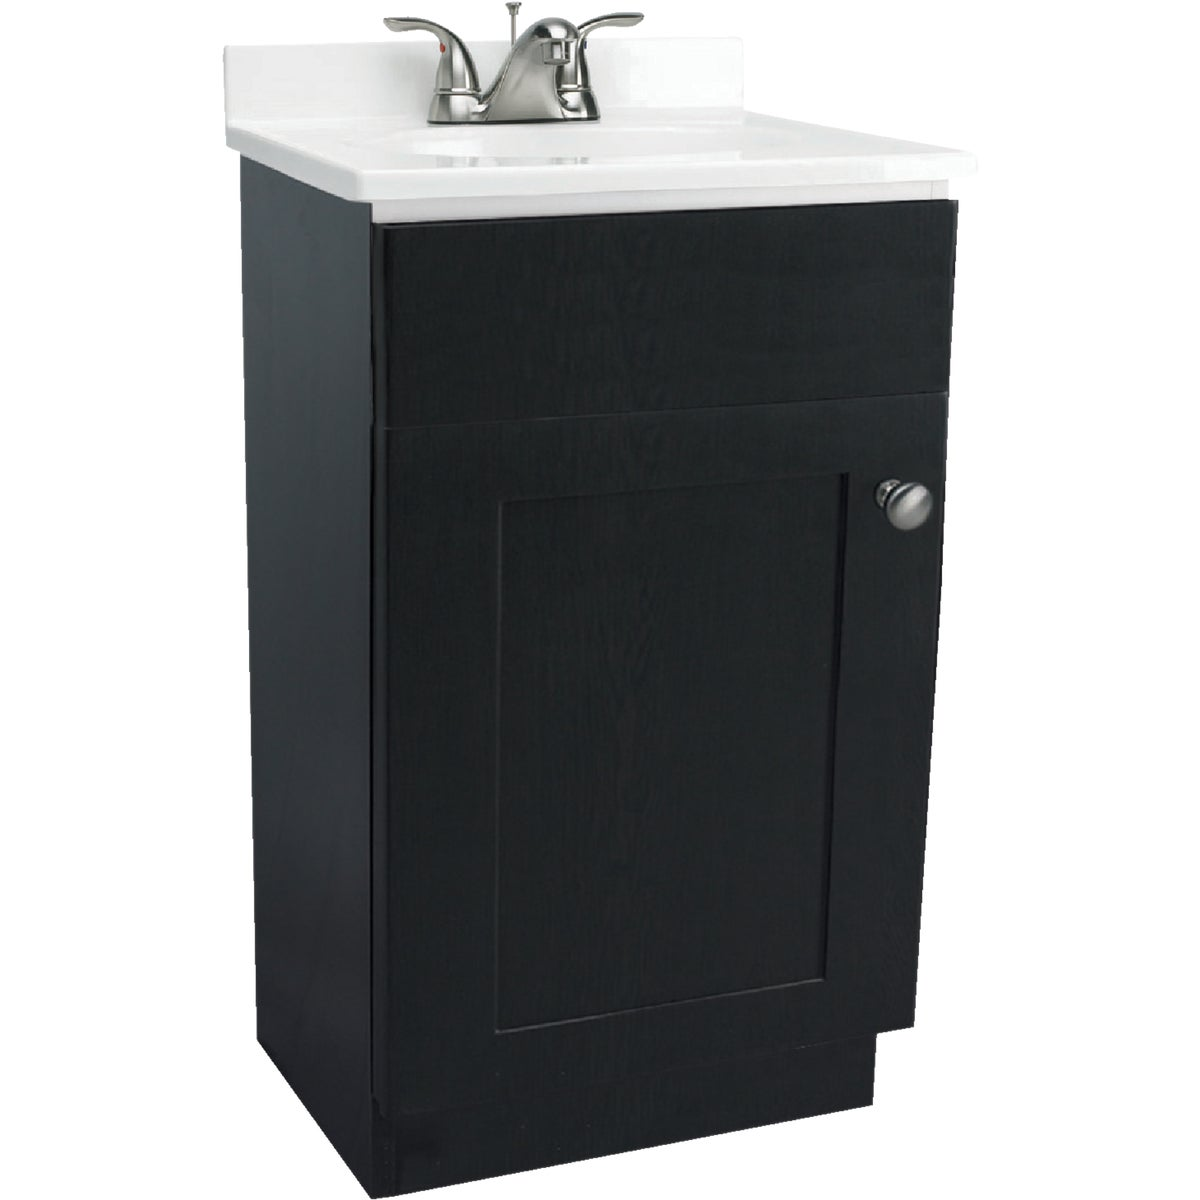 OAK COMBO VANITY - 541623 by Design House  Dhi